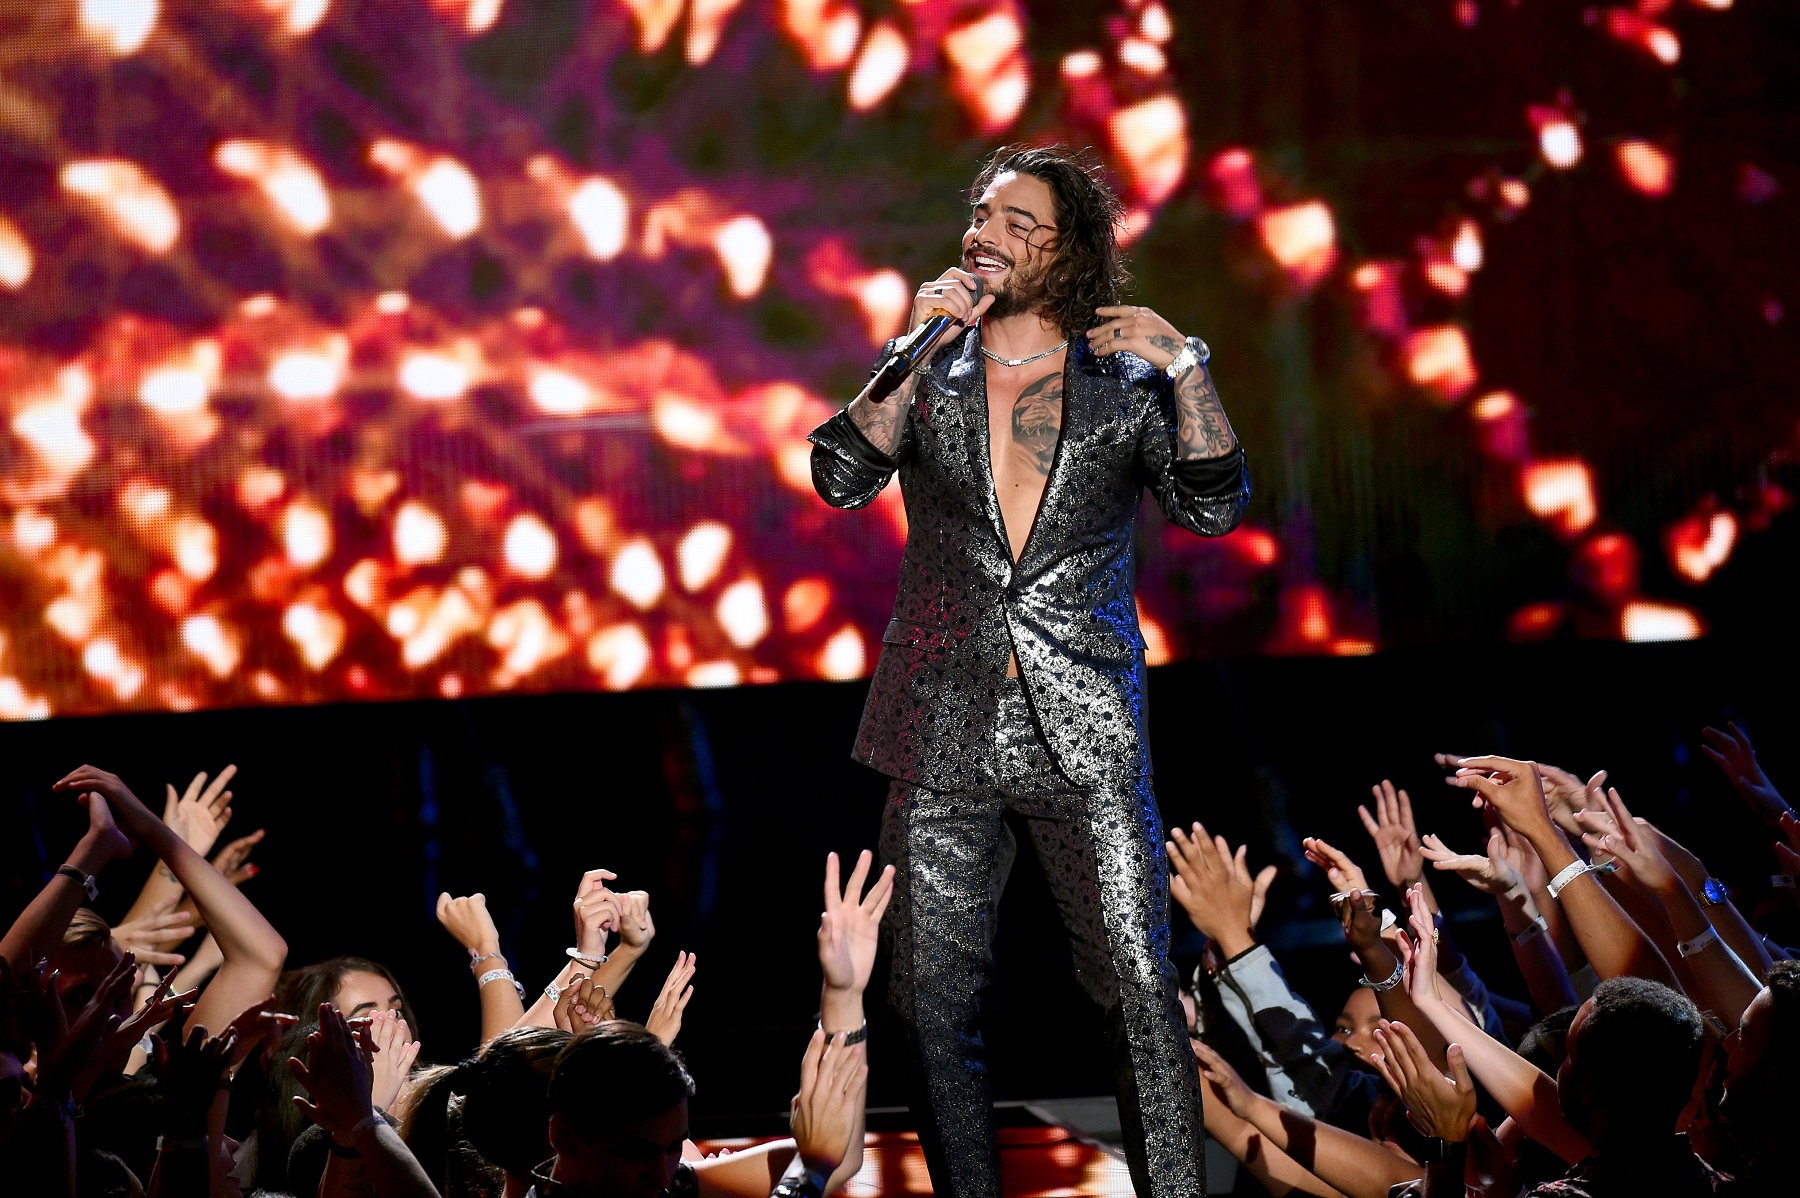 NEW YORK, NY - AUGUST 20:  Maluma performs onstage during the 2018 MTV Video Music Awards at Radio City Music Hall on August 20, 2018 in New York City.  (Photo by Theo Wargo/Getty Images)